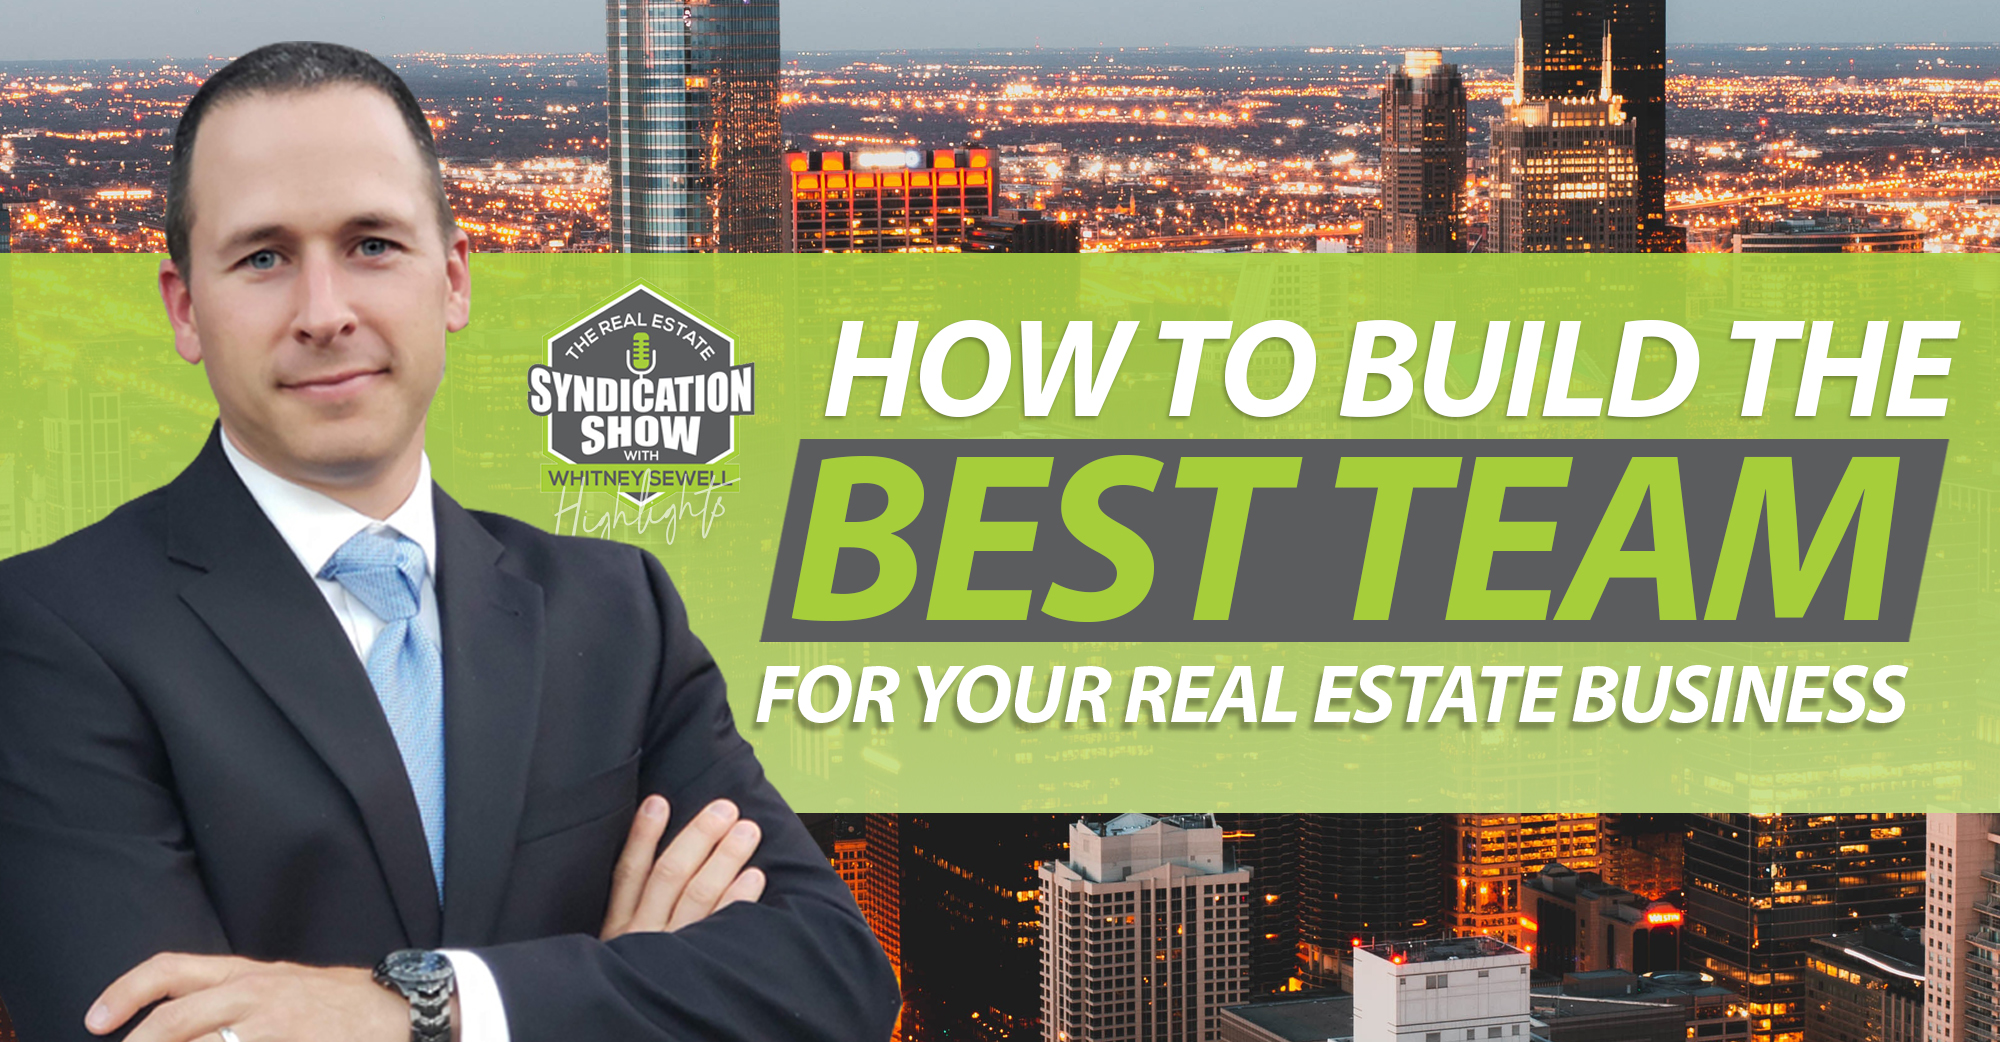 How To Build the Best Team For Your Real Estate Business